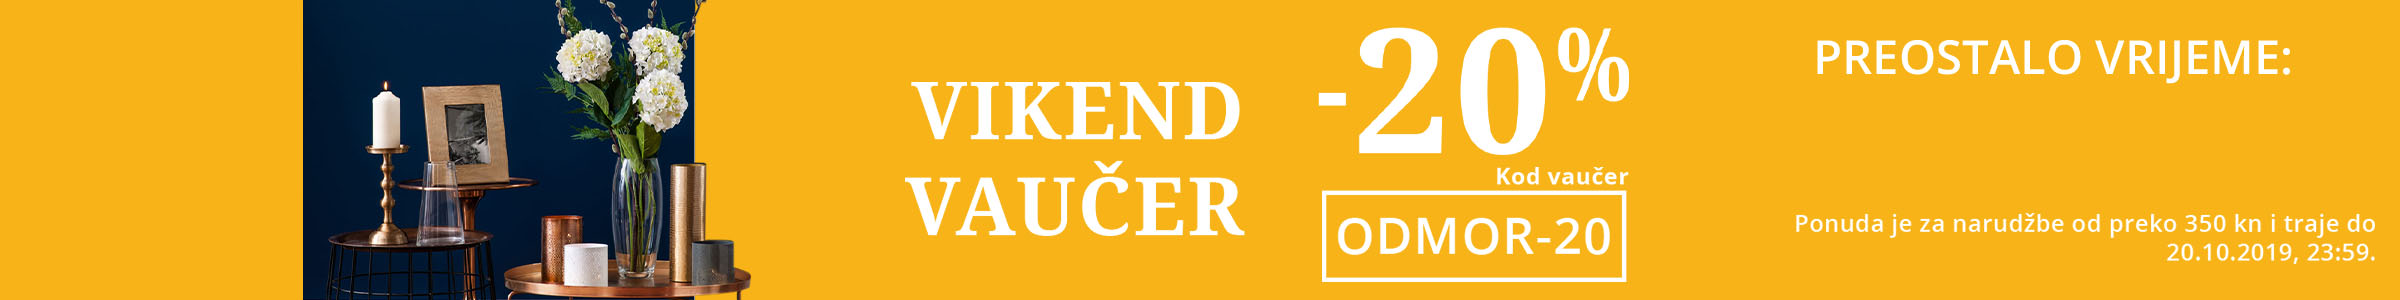 Weekend Voucher